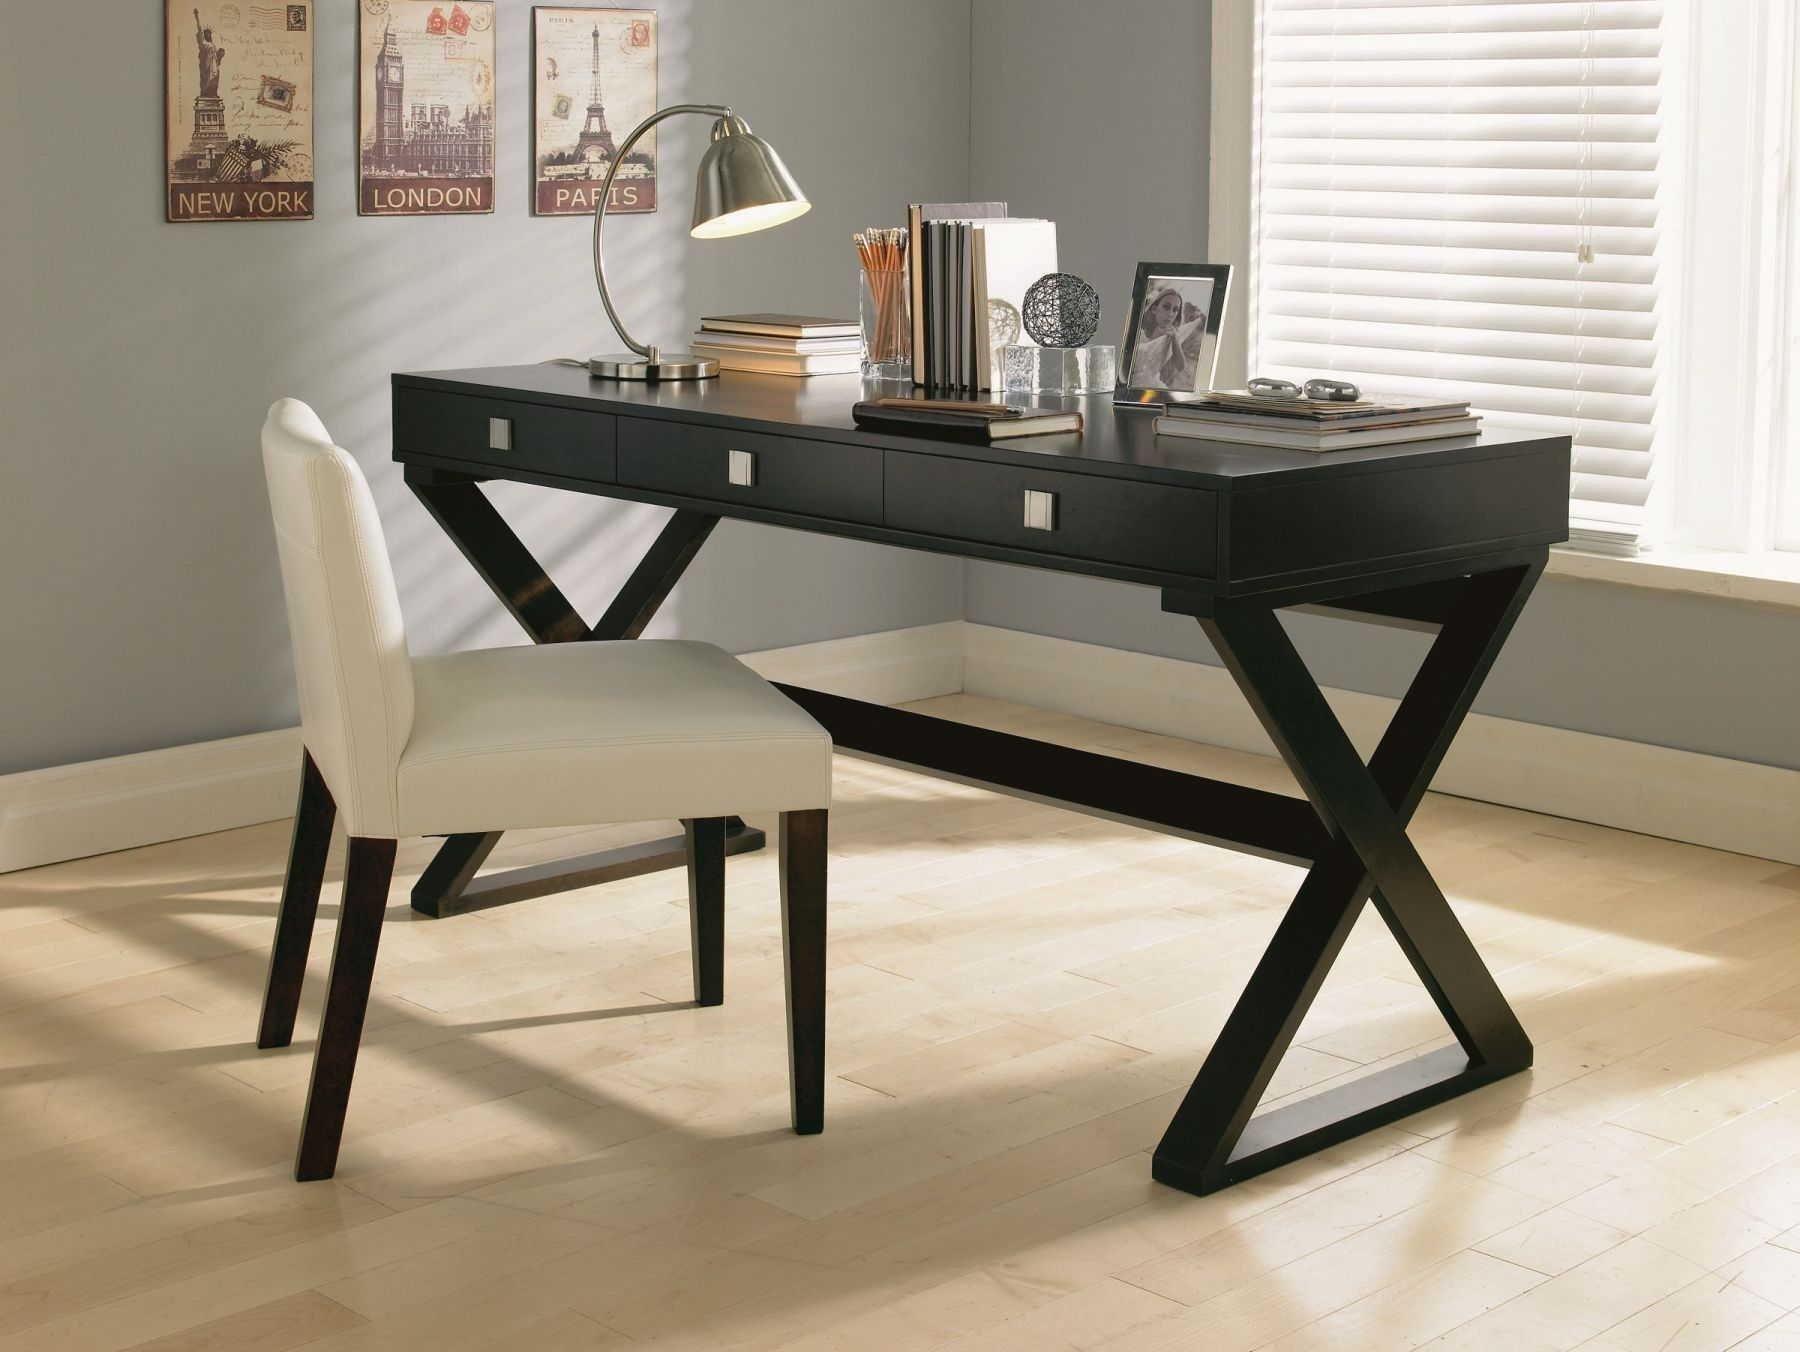 small home desks furniture. unique small sunpan emilio writing desk  give your small home office space some  functionality with the  with small home desks furniture s